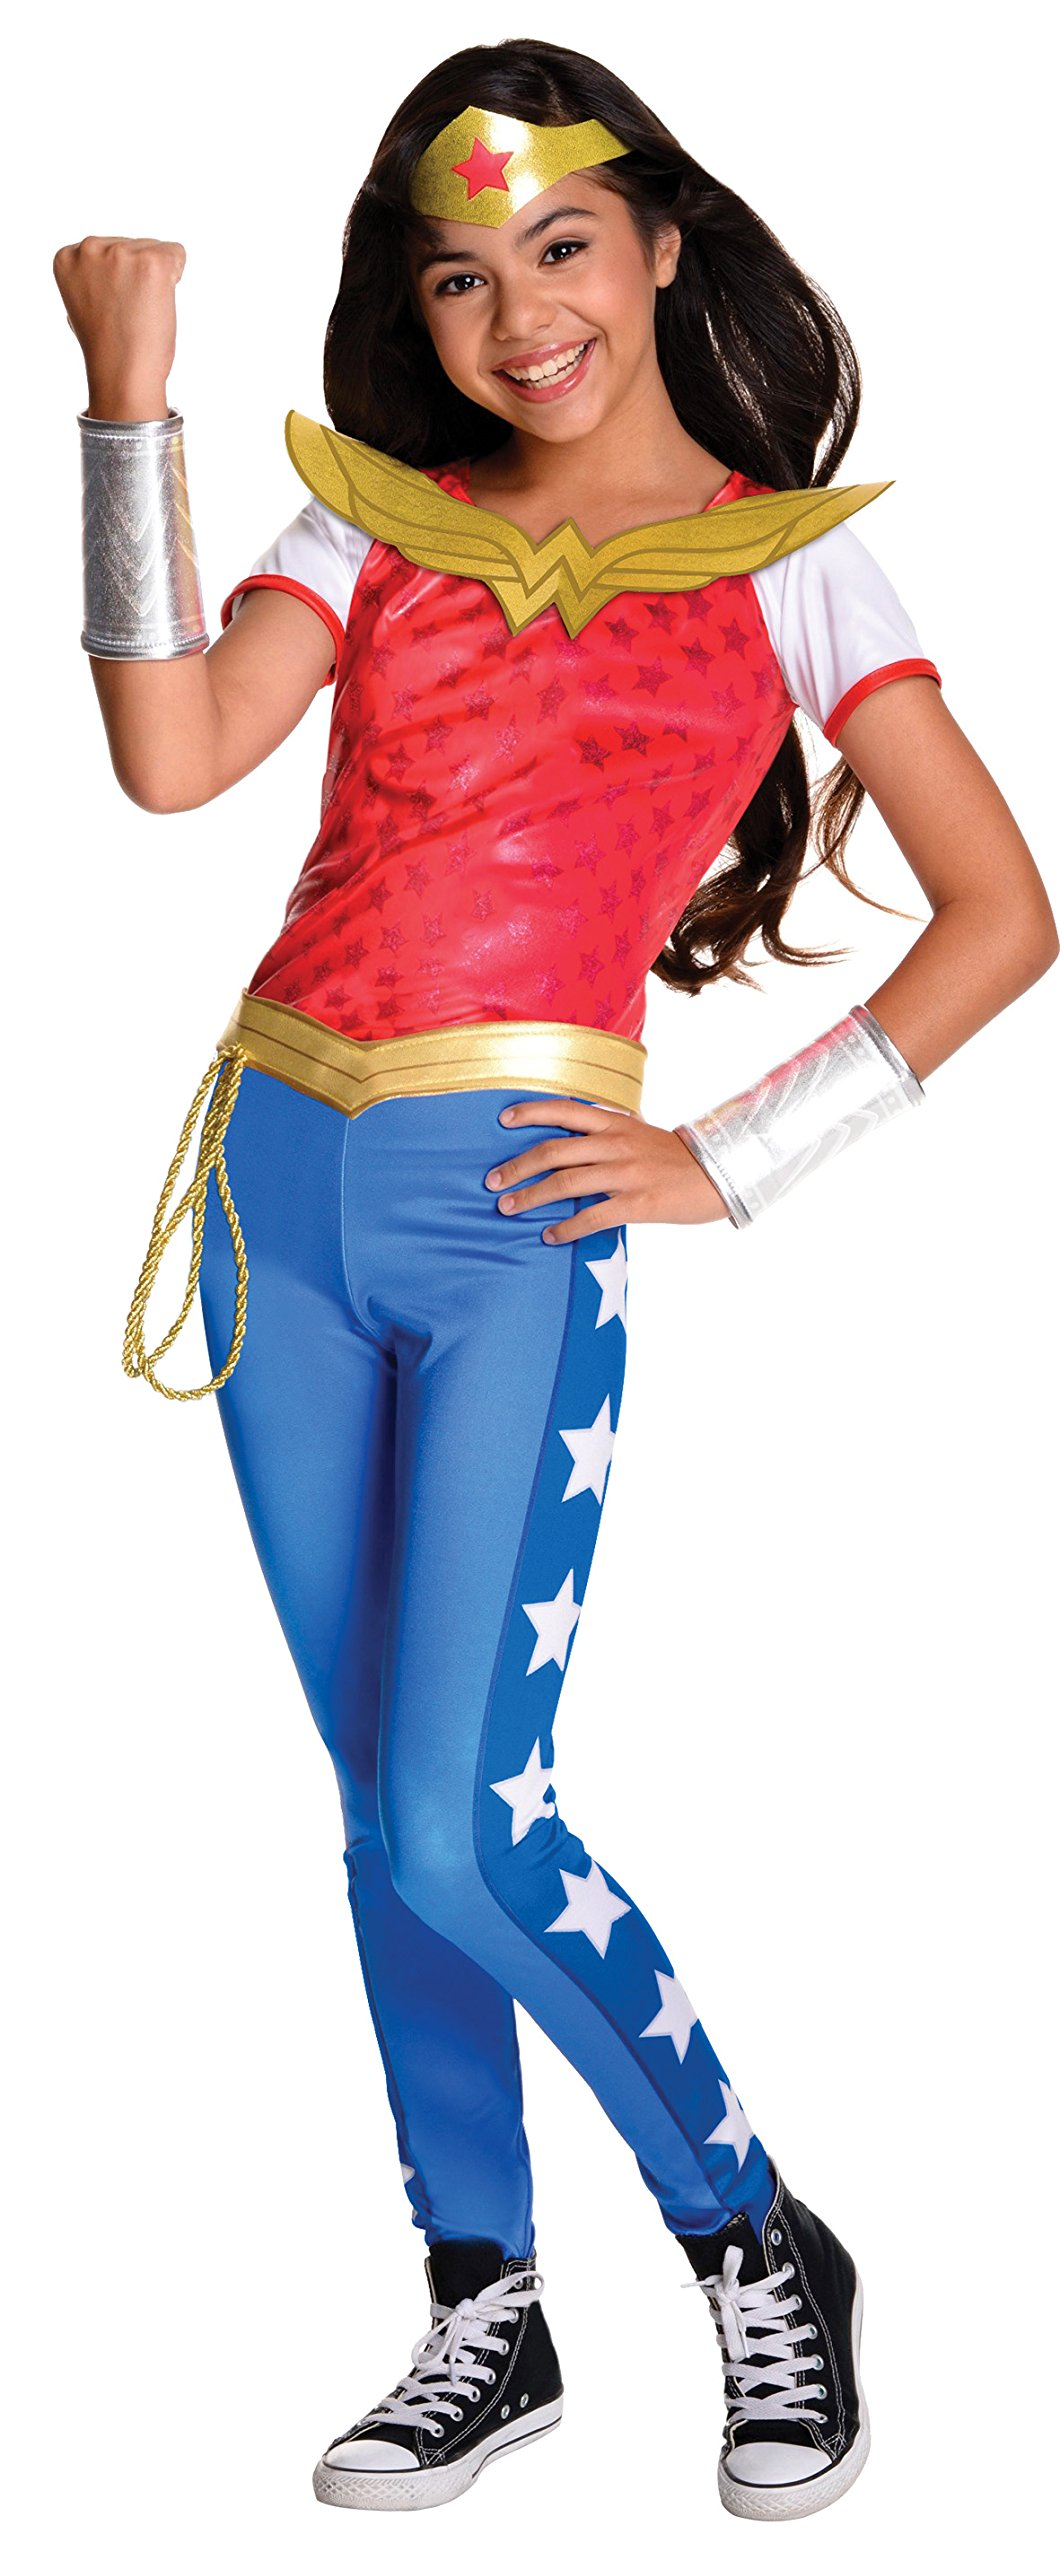 Rubie's Costume Co Deluxe Wonder Woman Child Costume - Large